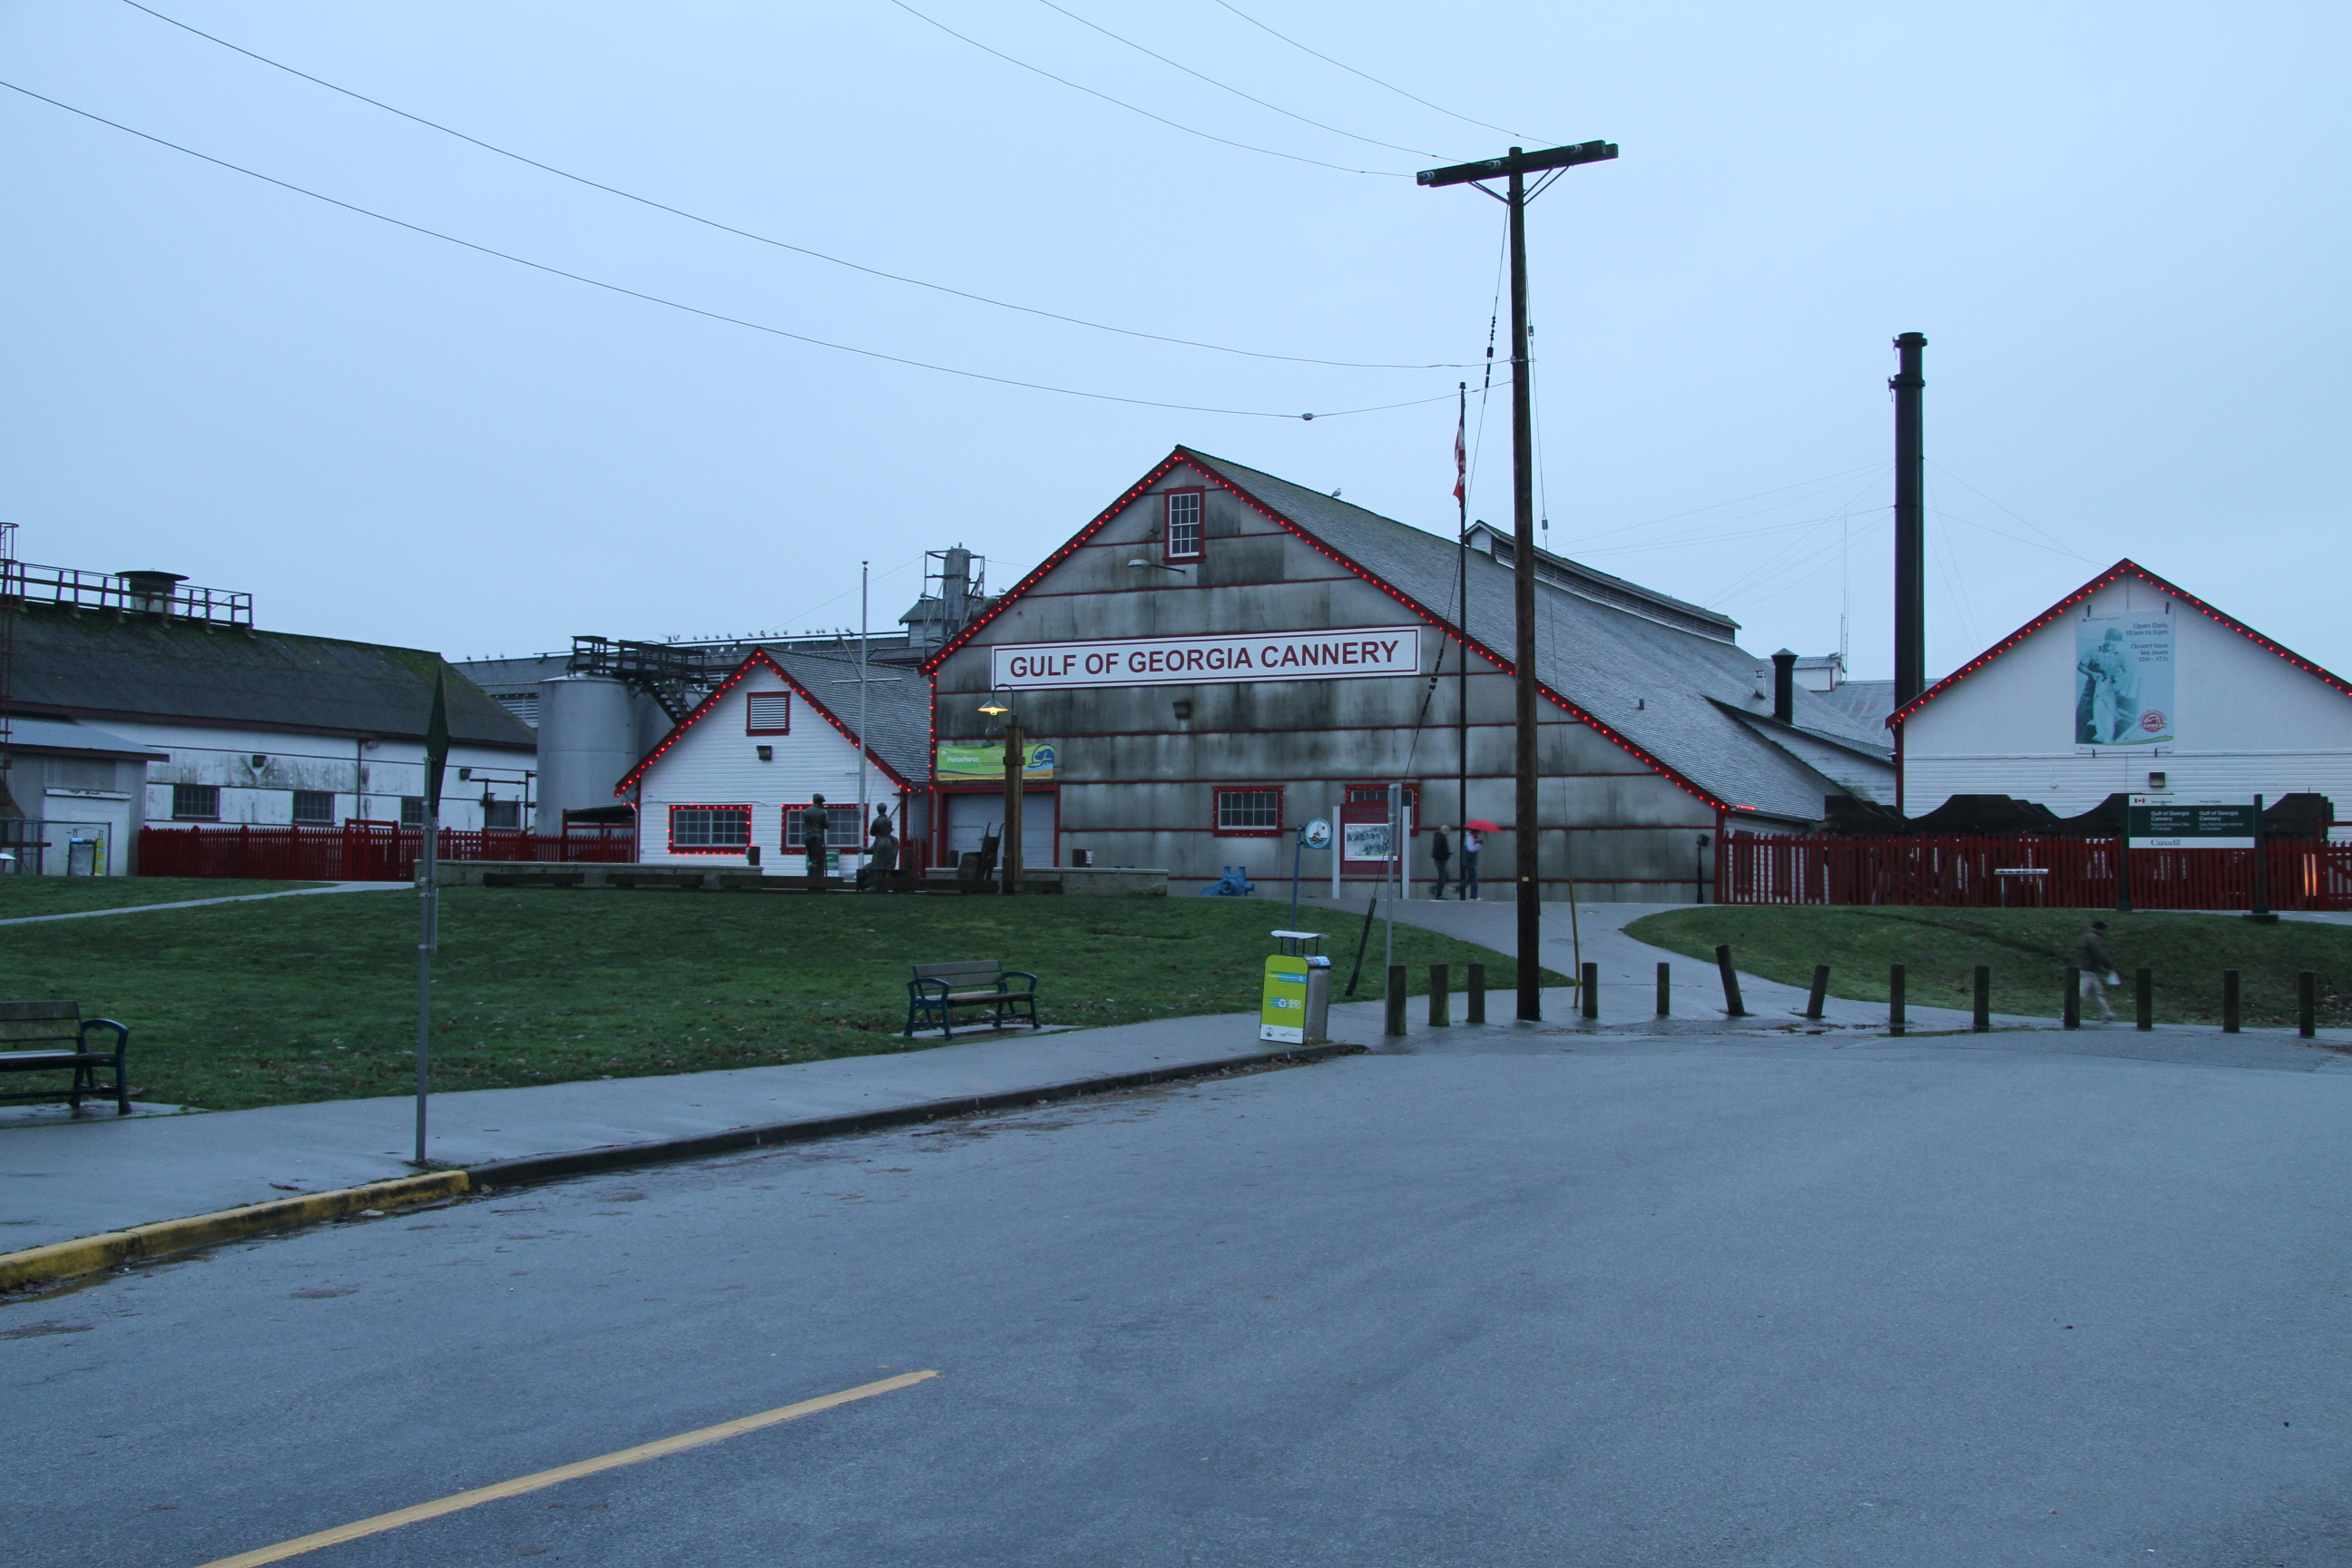 Gulf of Georgia Cannery on Boxing Day 2012